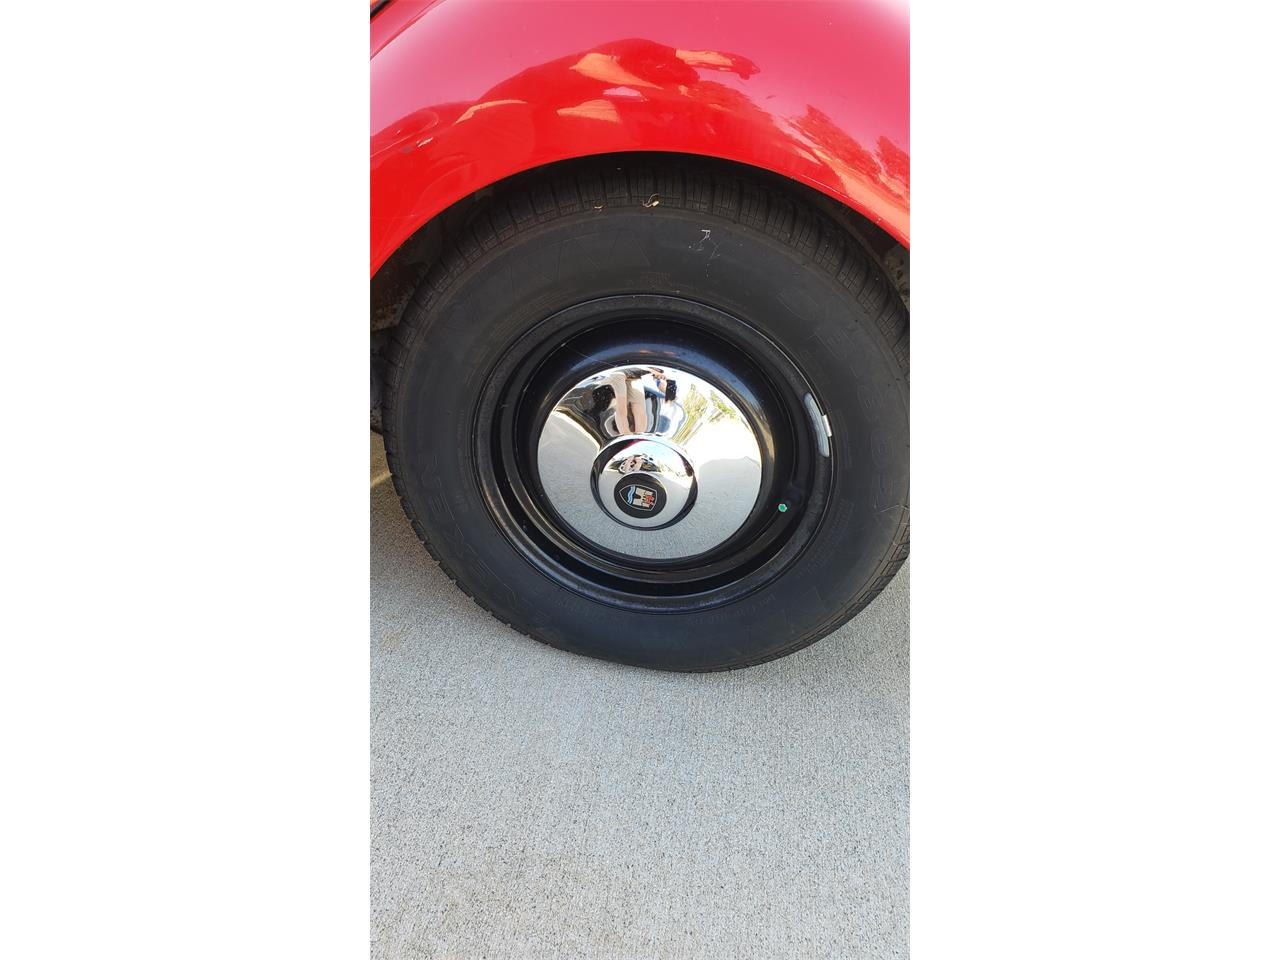 Large Picture of '65 Volkswagen Beetle located in California - $12,000.00 Offered by a Private Seller - QXYY